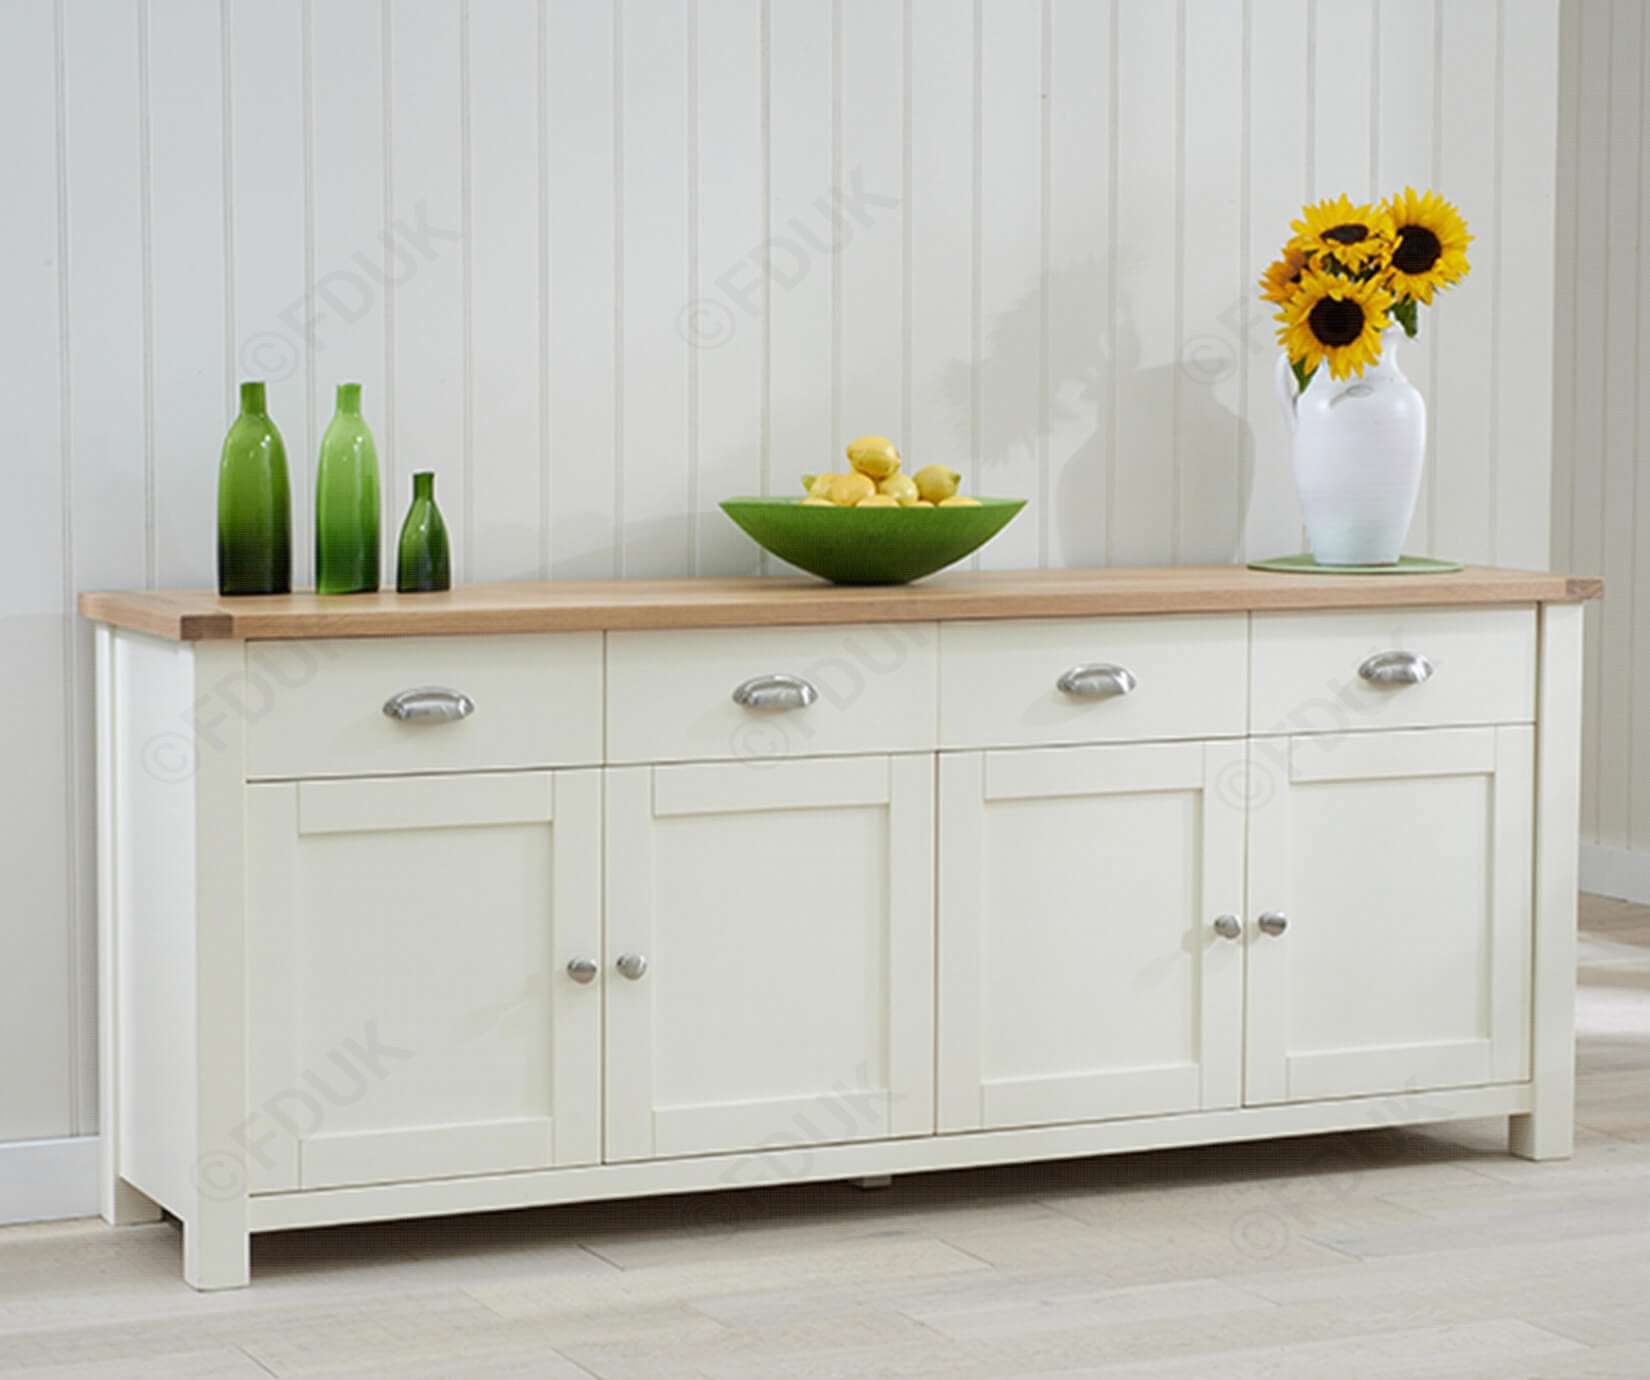 Popular Photo of 4 Door/4 Drawer Metal Inserts Sideboards